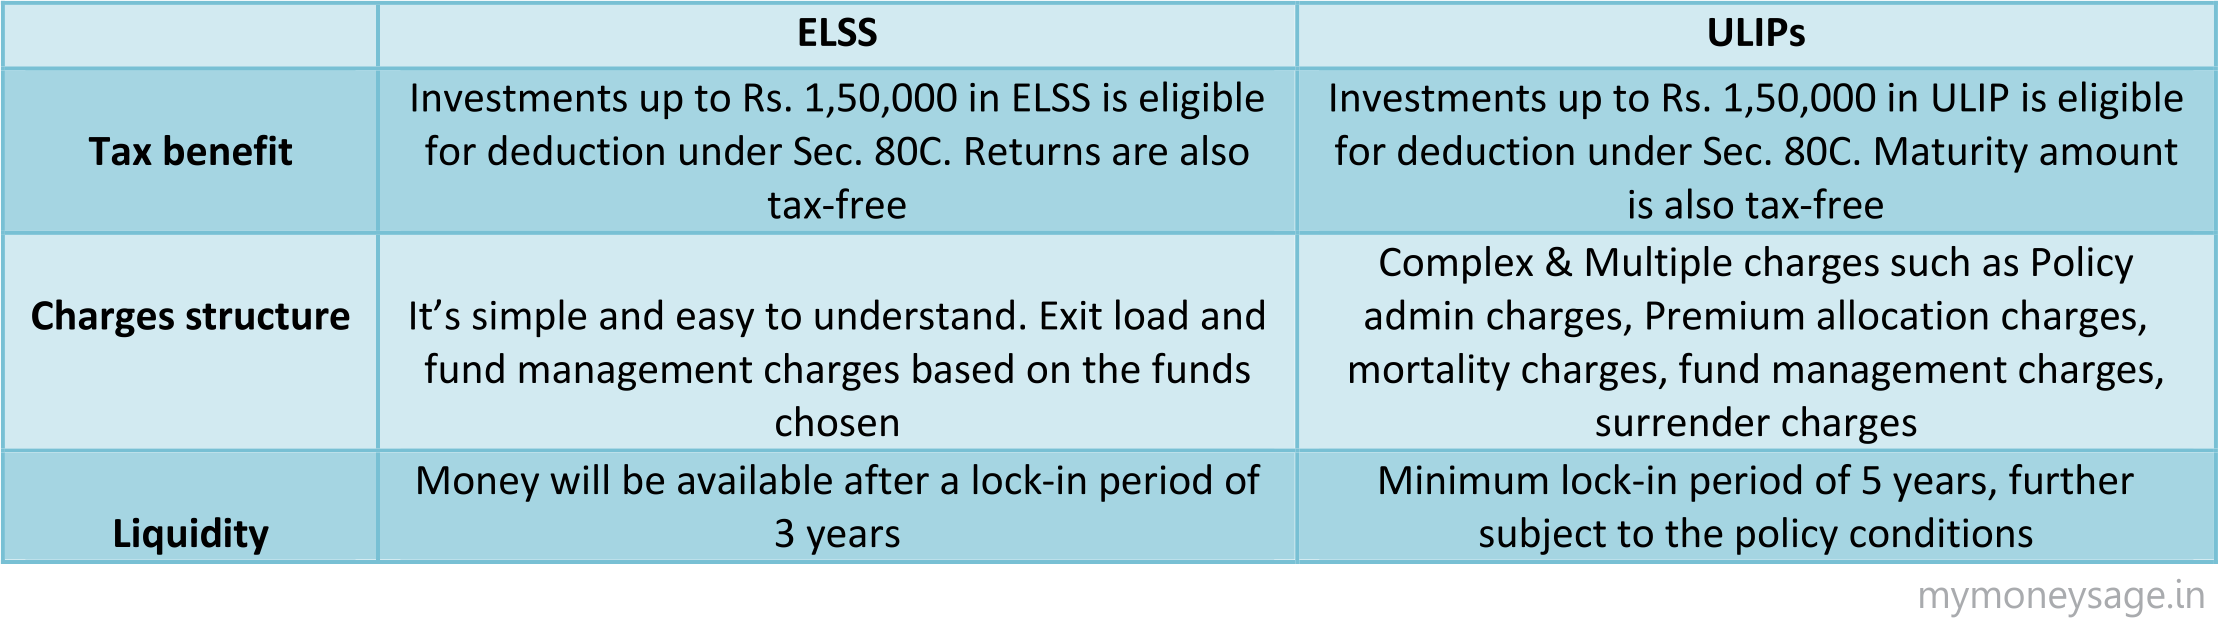 comparison of ulips with mutual fund Here is a comparison between ulip and elss/mutual fund: the unit linked insurance plan ie ulip was introduced by the insurance industry in india many years back when the equity market was poised for a take-off and people wanted to take the advantage of capital appreciation.